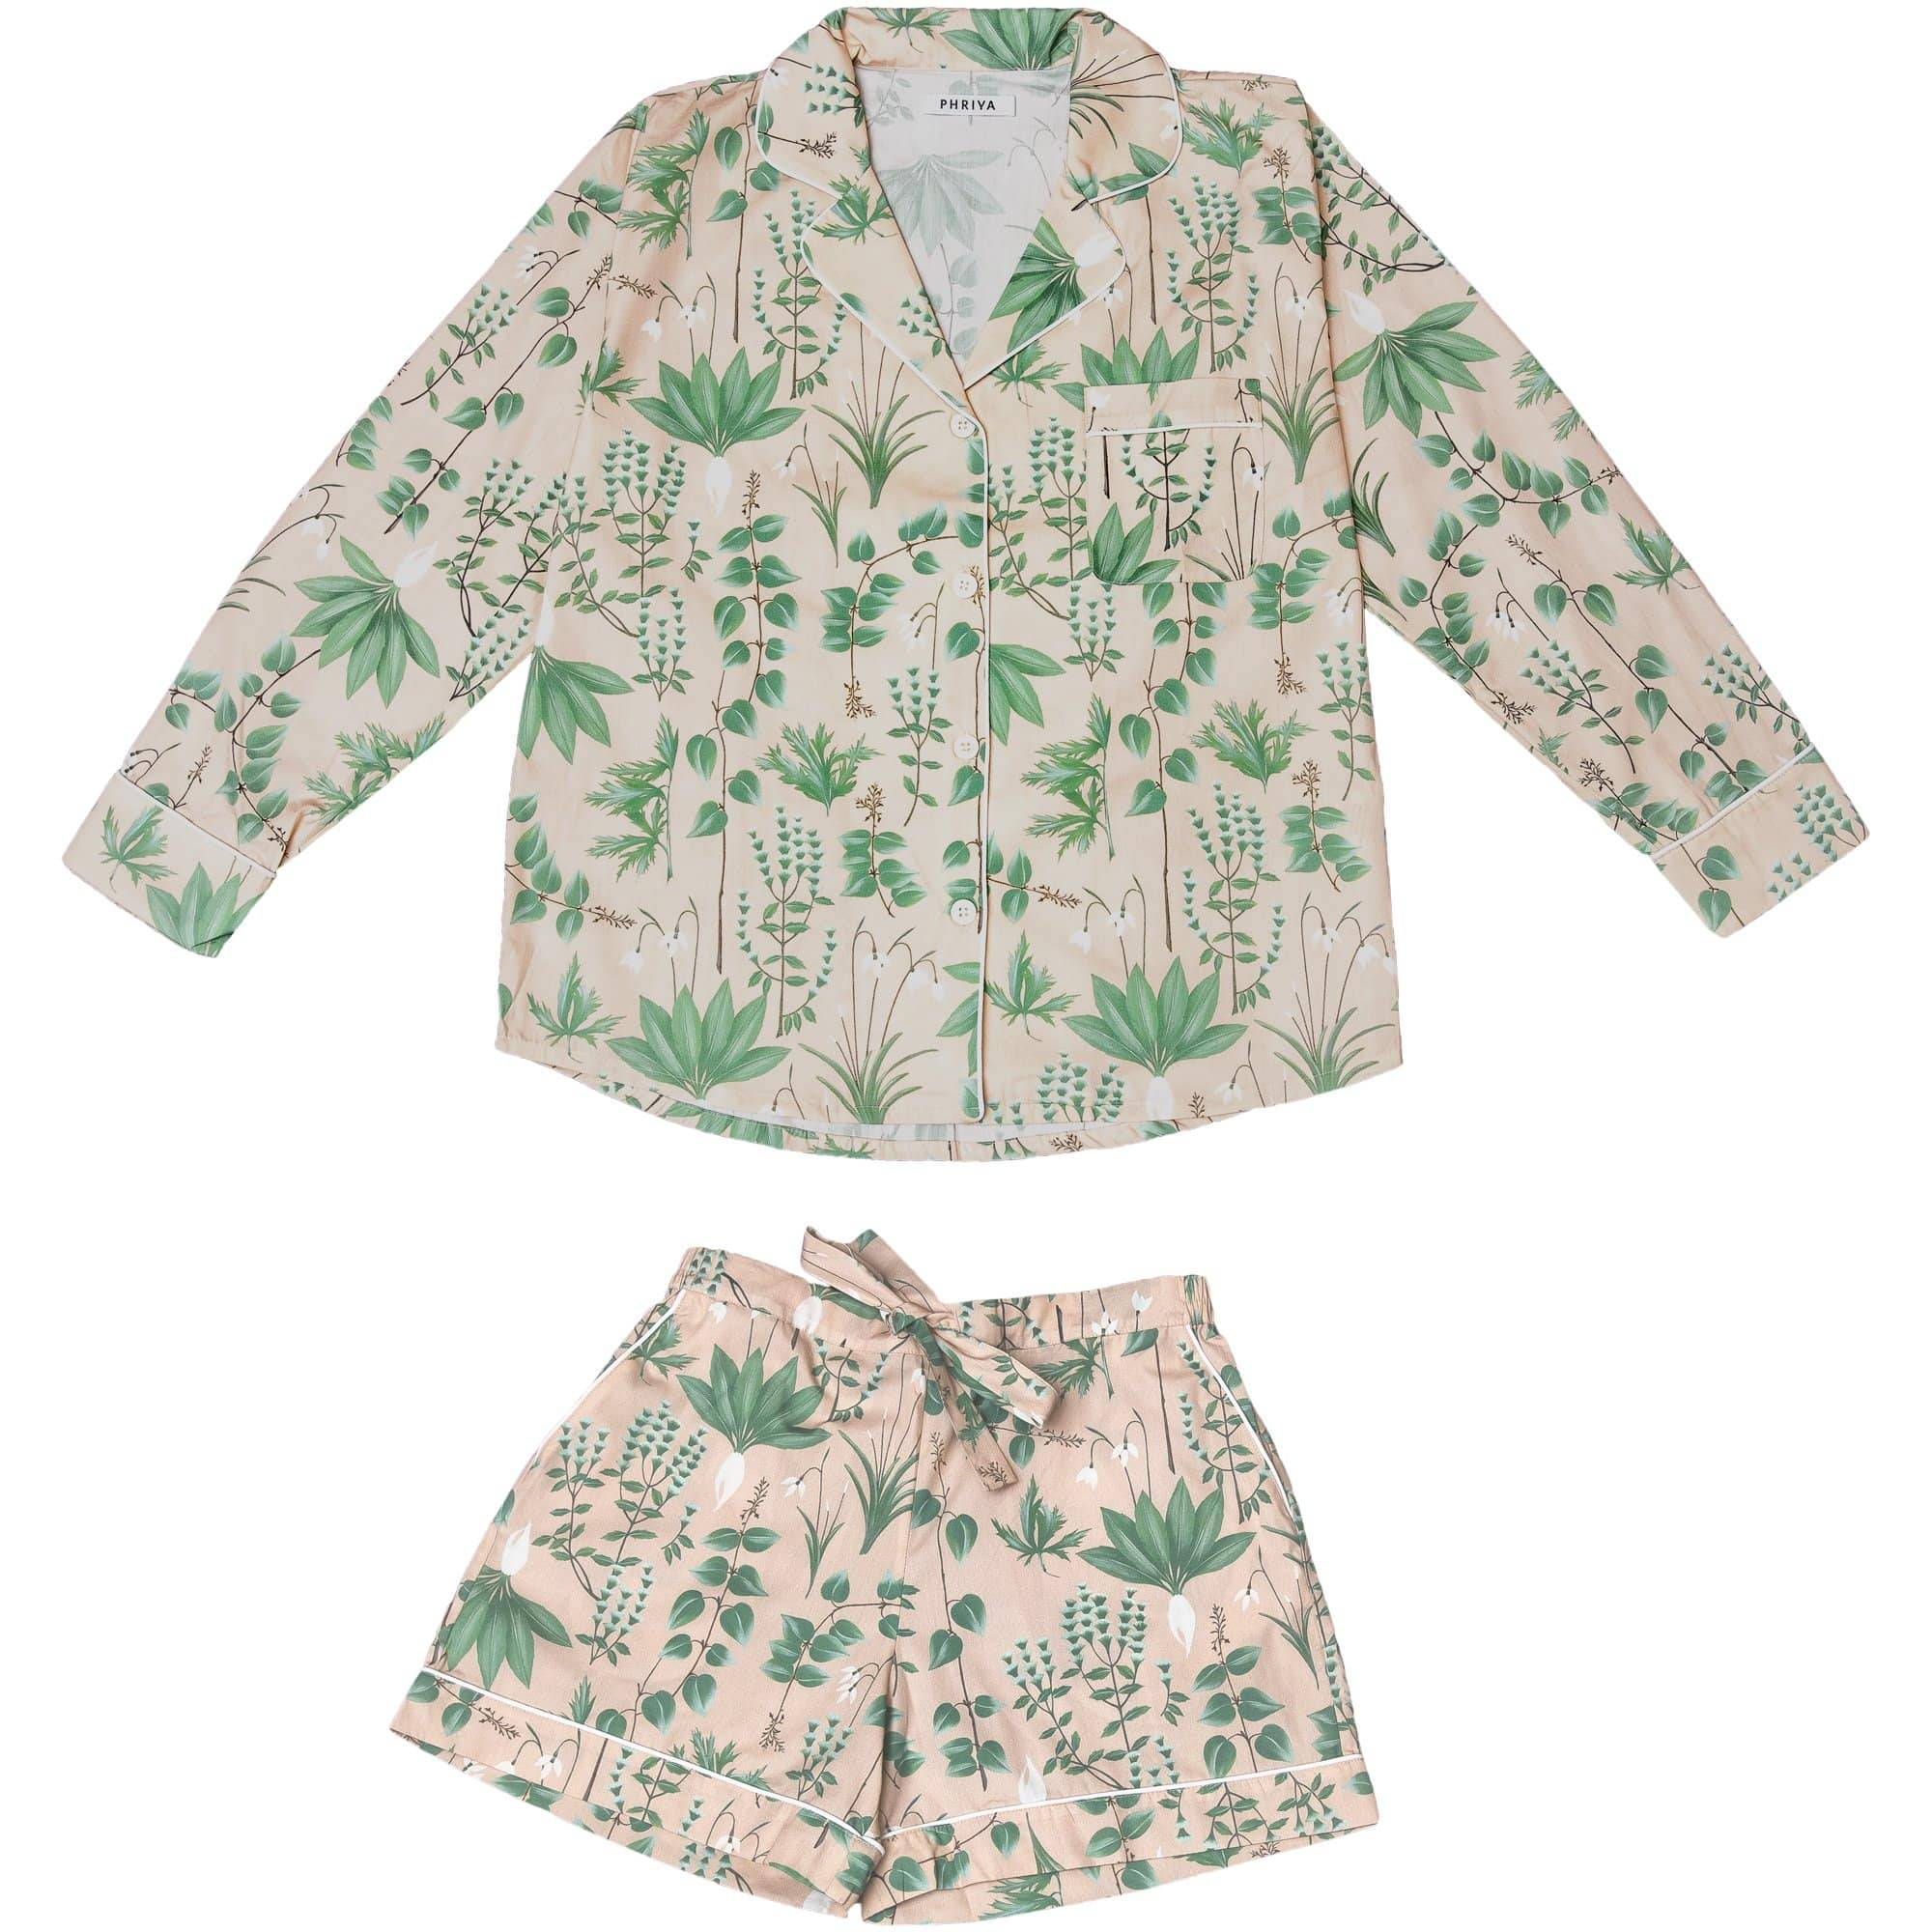 Phriya Women's Pink Circe's Garden Pajama Set With Shorts  - multicolor - Size: One Size